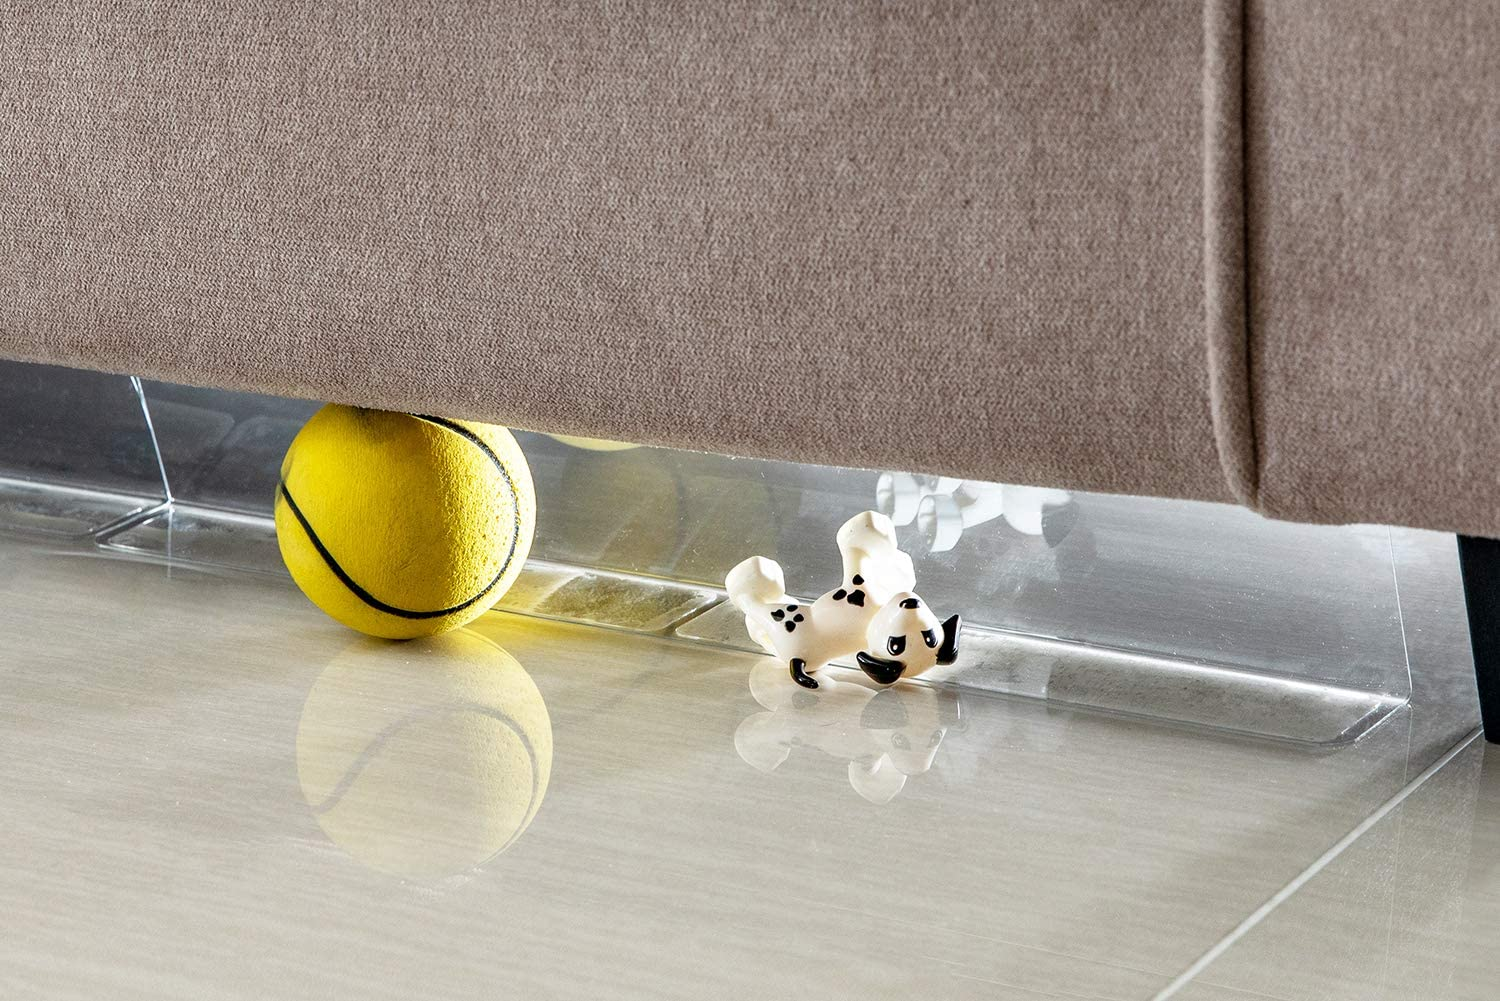 BOWERBIRD Clear Toy Blockers for Furniture - Stop Things from Going Under Couch Sofa Bed and Other Furniture - Suit for Hard Surface Floors Only